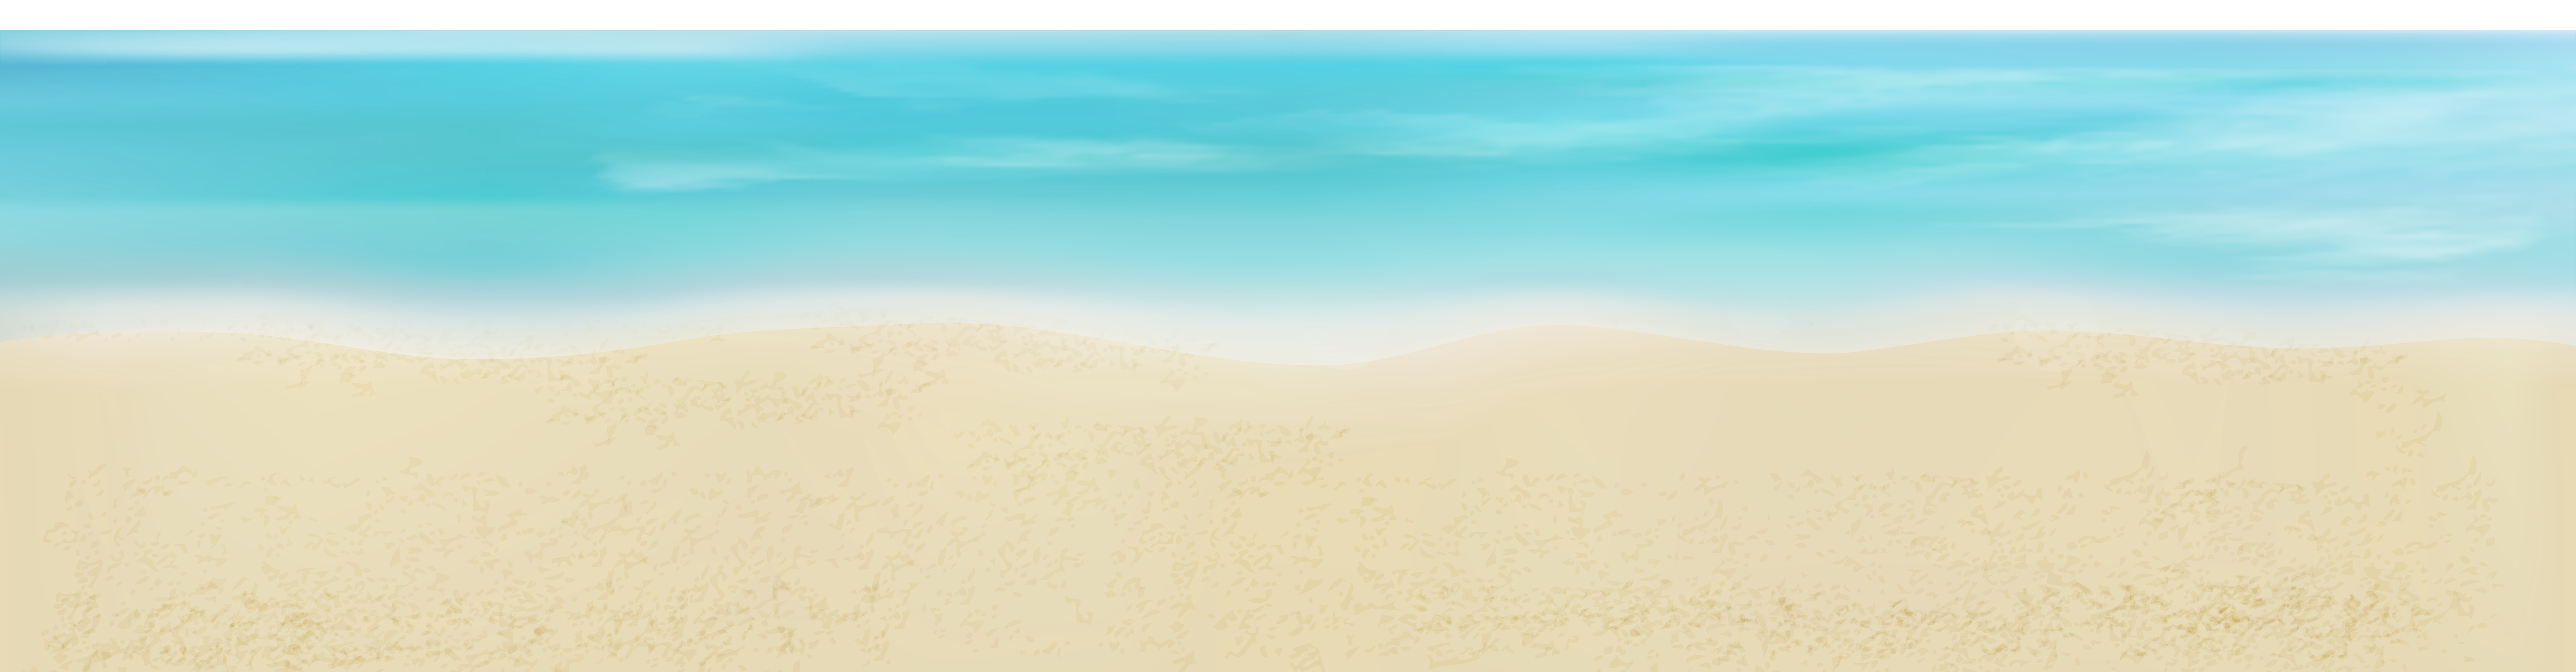 Sand and Sea PNG Clip Art Image.